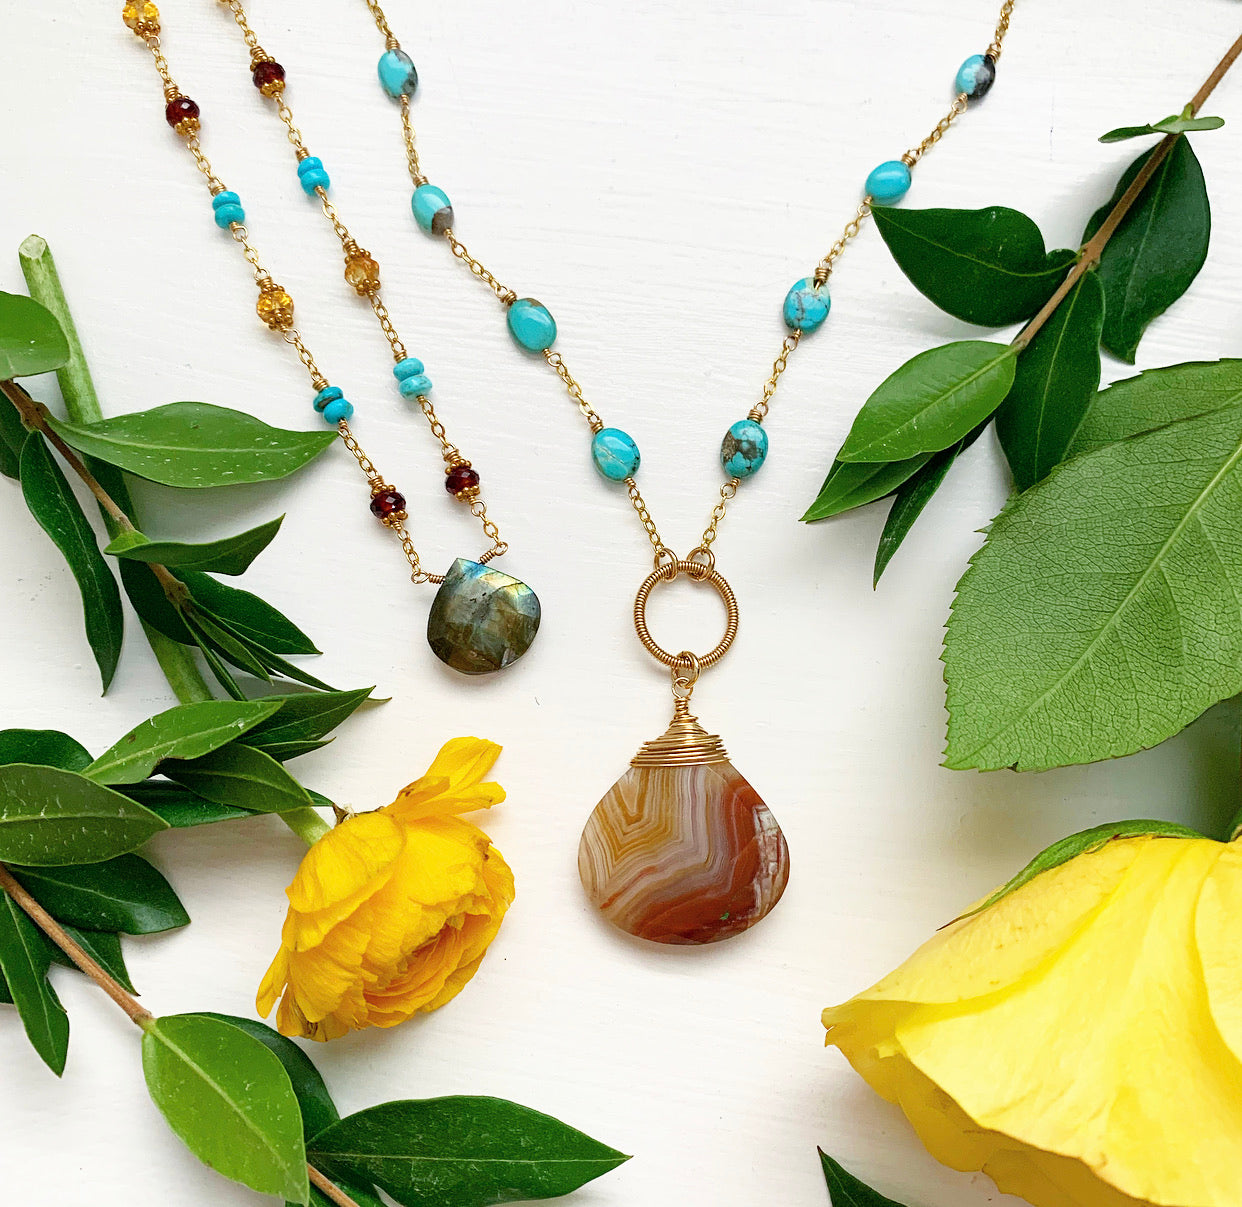 940-Gemstone Layering Necklace